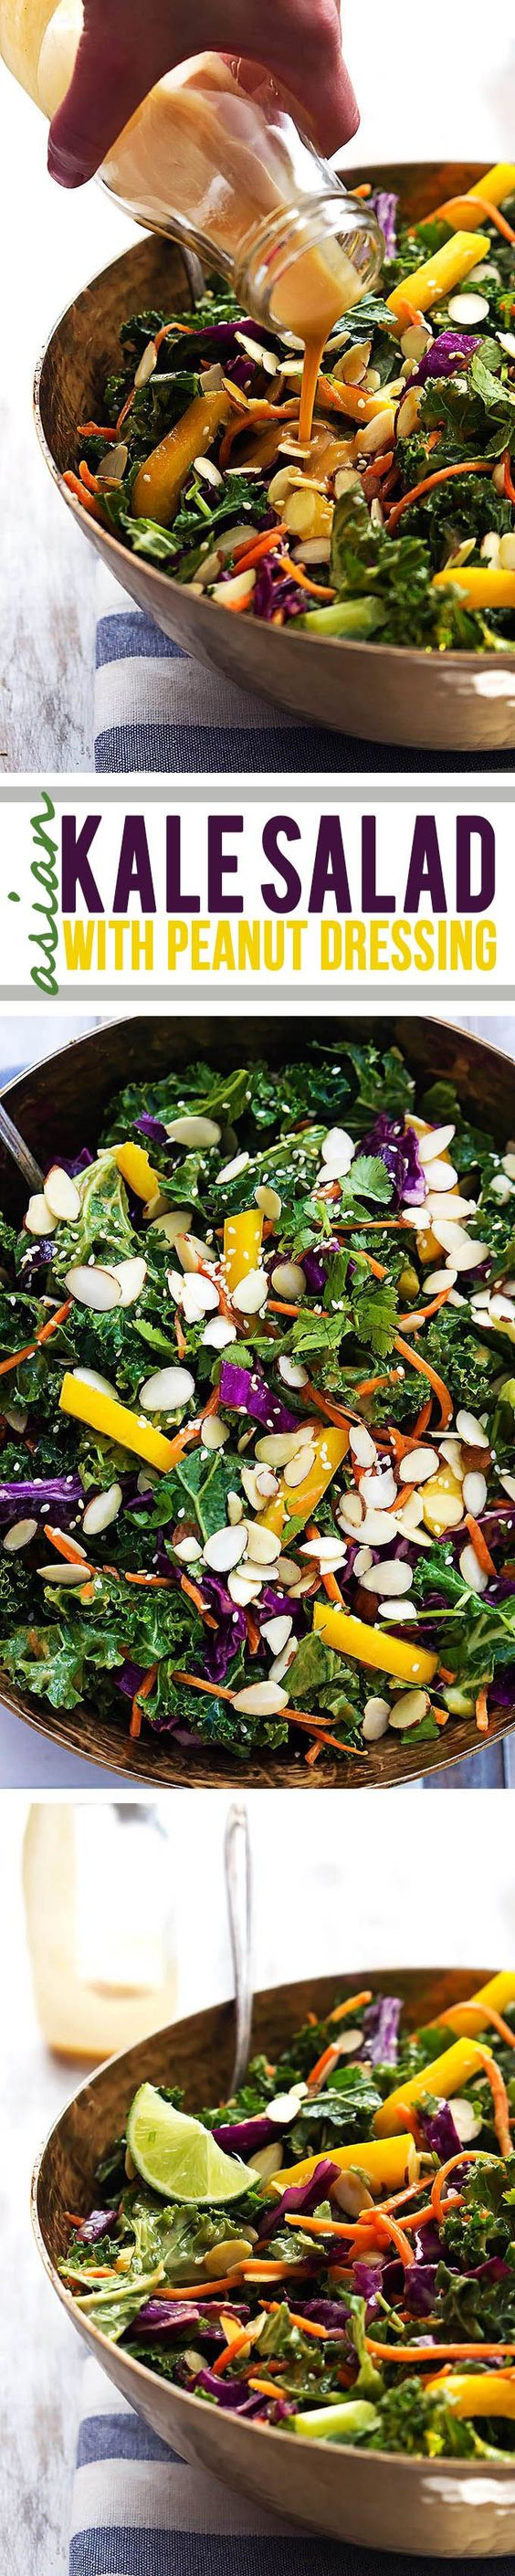 kale salads peanuts almonds cabbages carrots dressing salads whole 30 ...